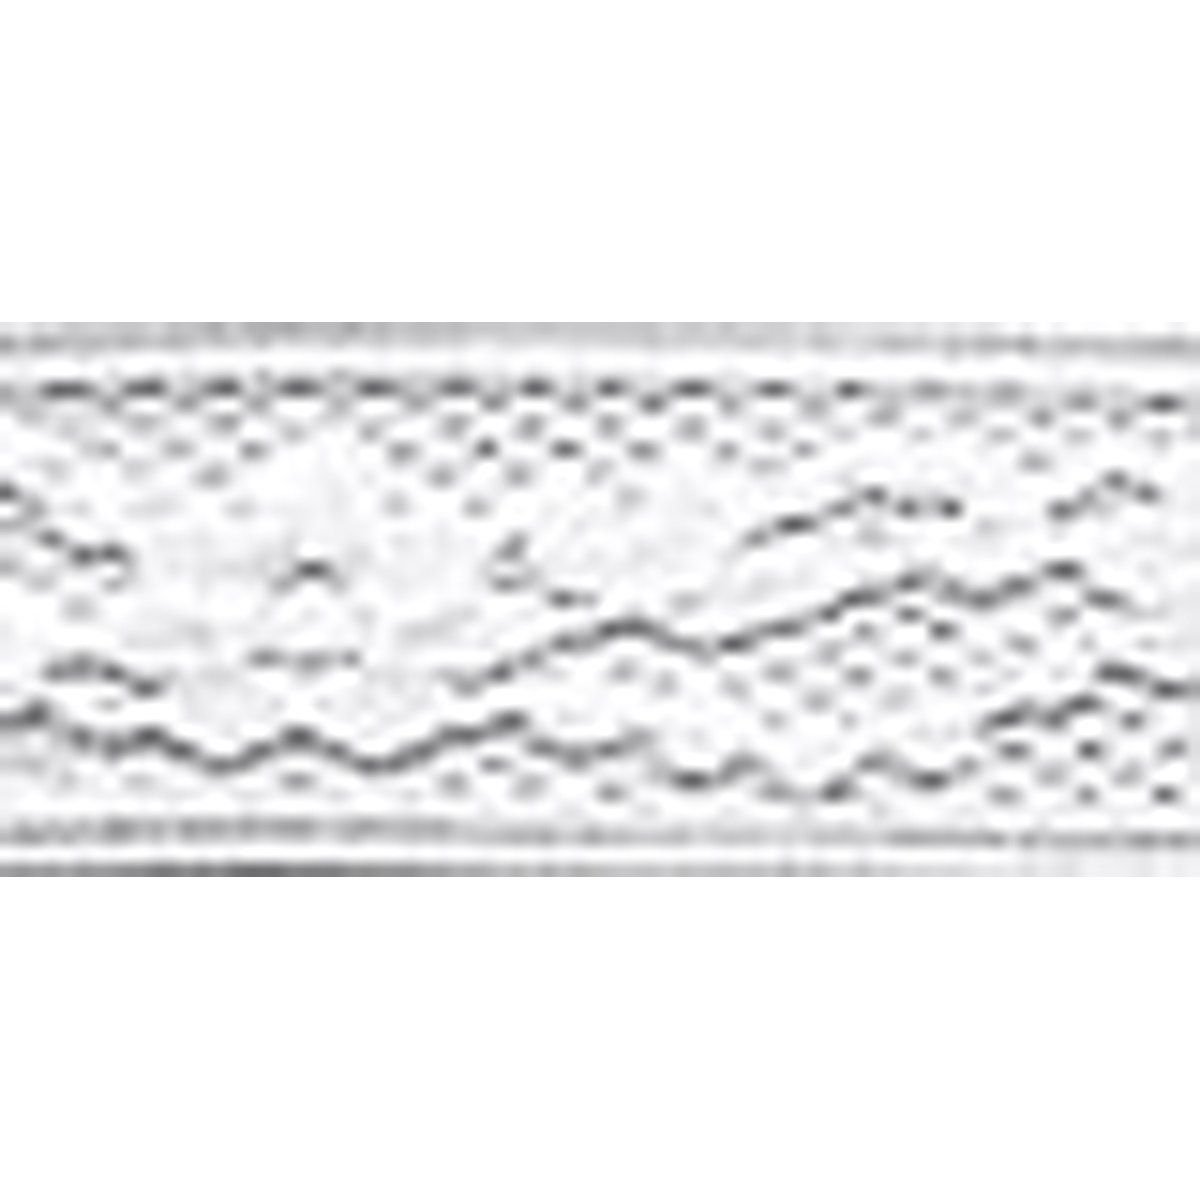 Wrights 117-305-030 Flexi Lace Hem Tape, White, 3-Yard Notions - In Network